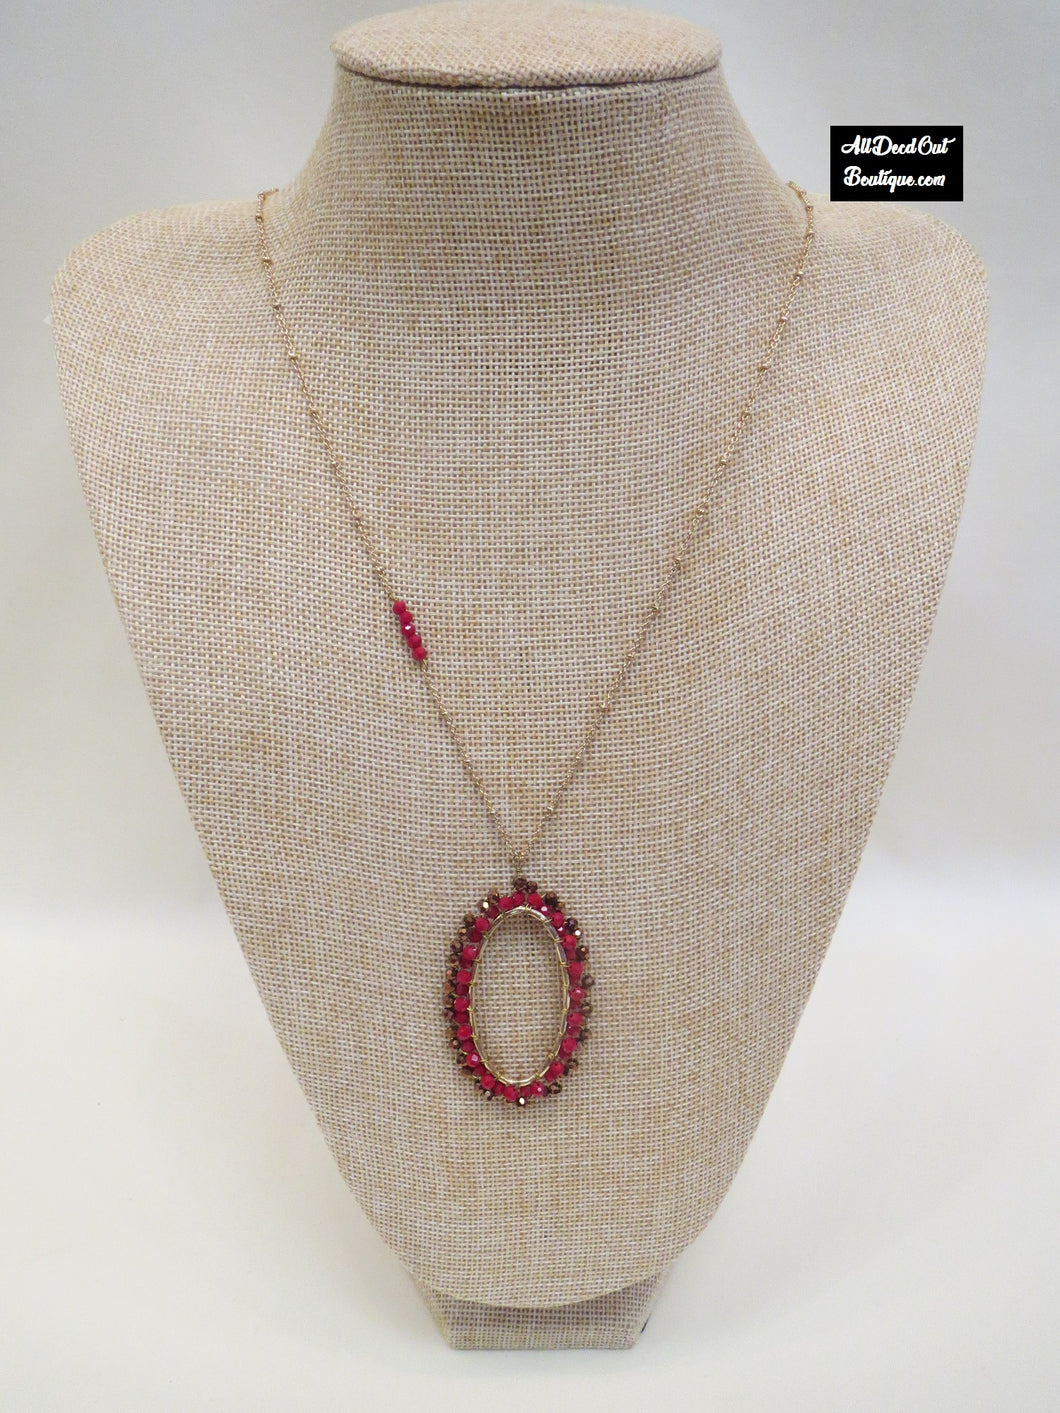 ADO | Long Red & Gold Necklace with Oval Pendant